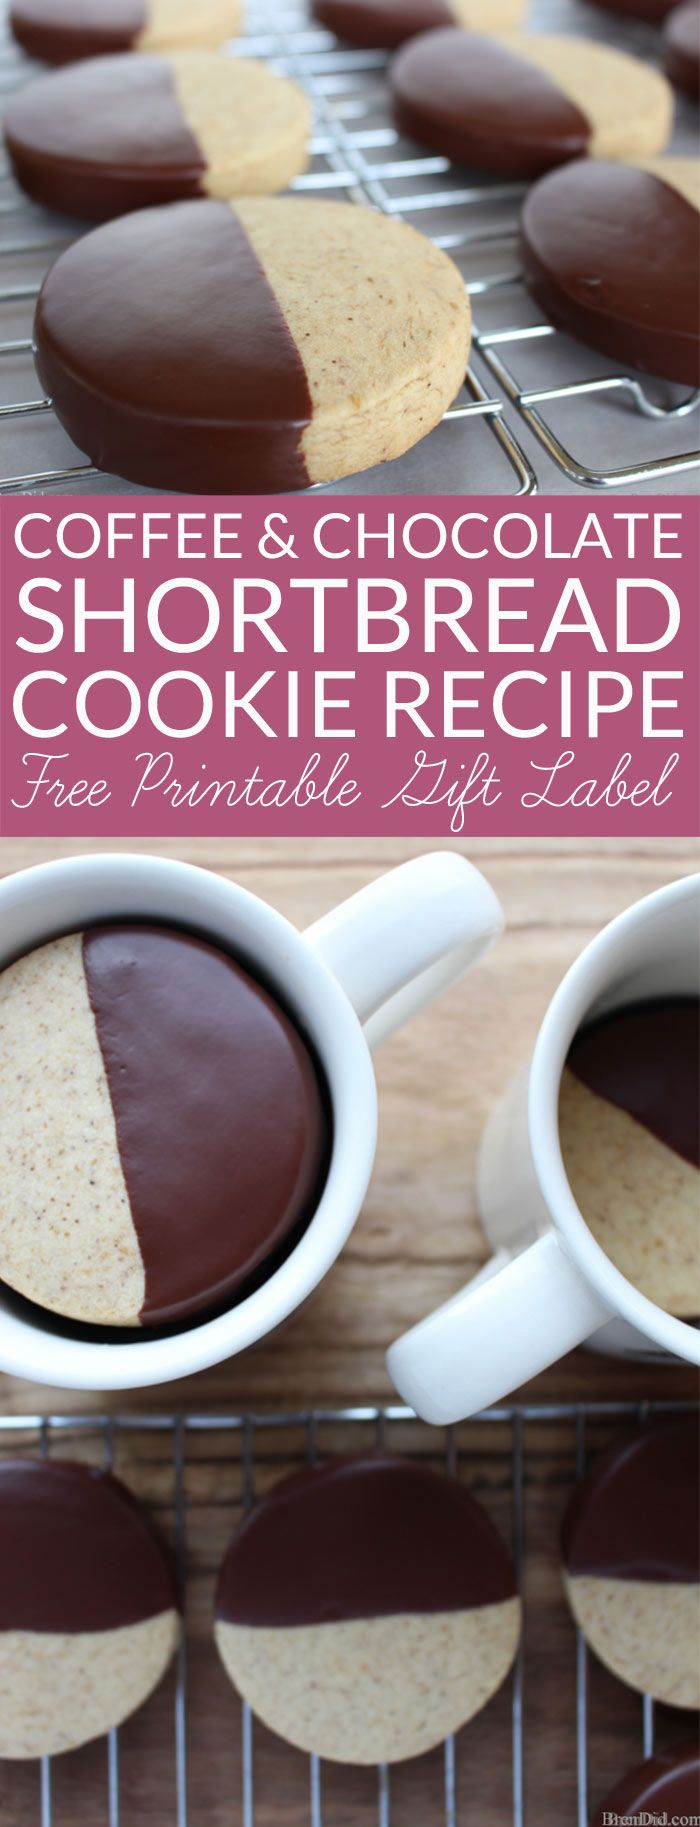 Coffee and Chocolate Shortbread Recipe --- Includes free printable gift tags for coffee lovers.